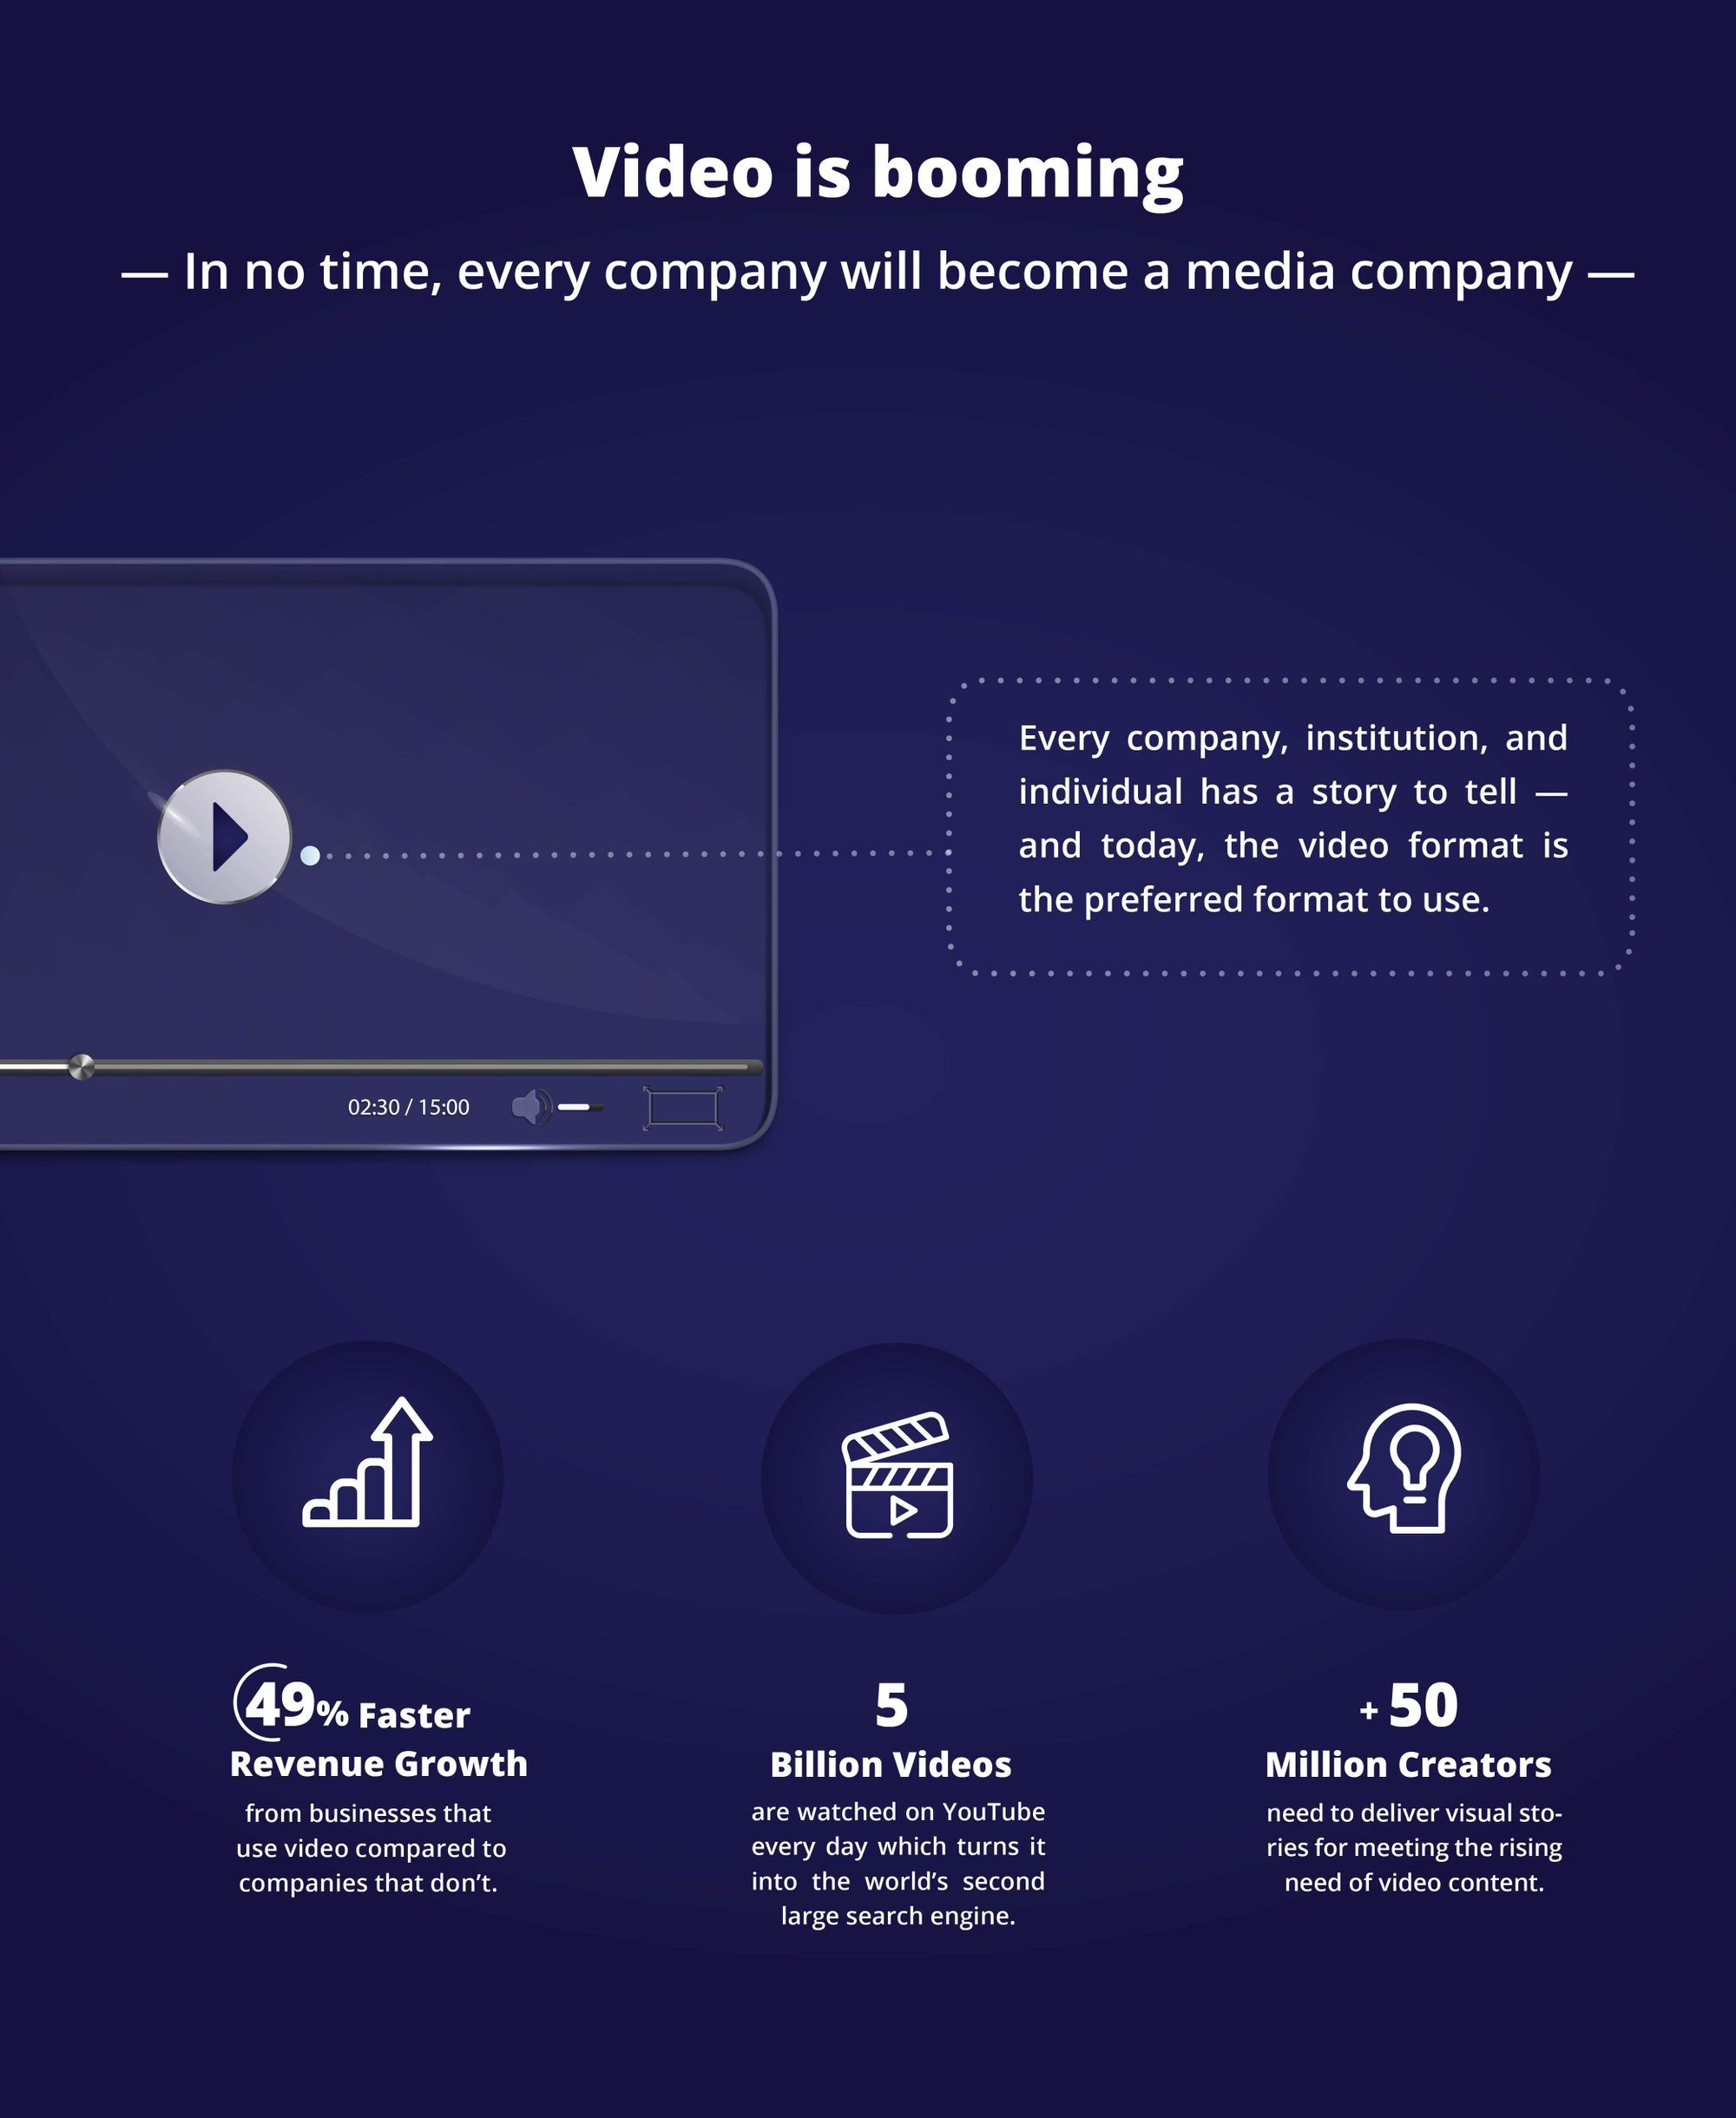 Video is booming and in no time every company will turn into a media company.